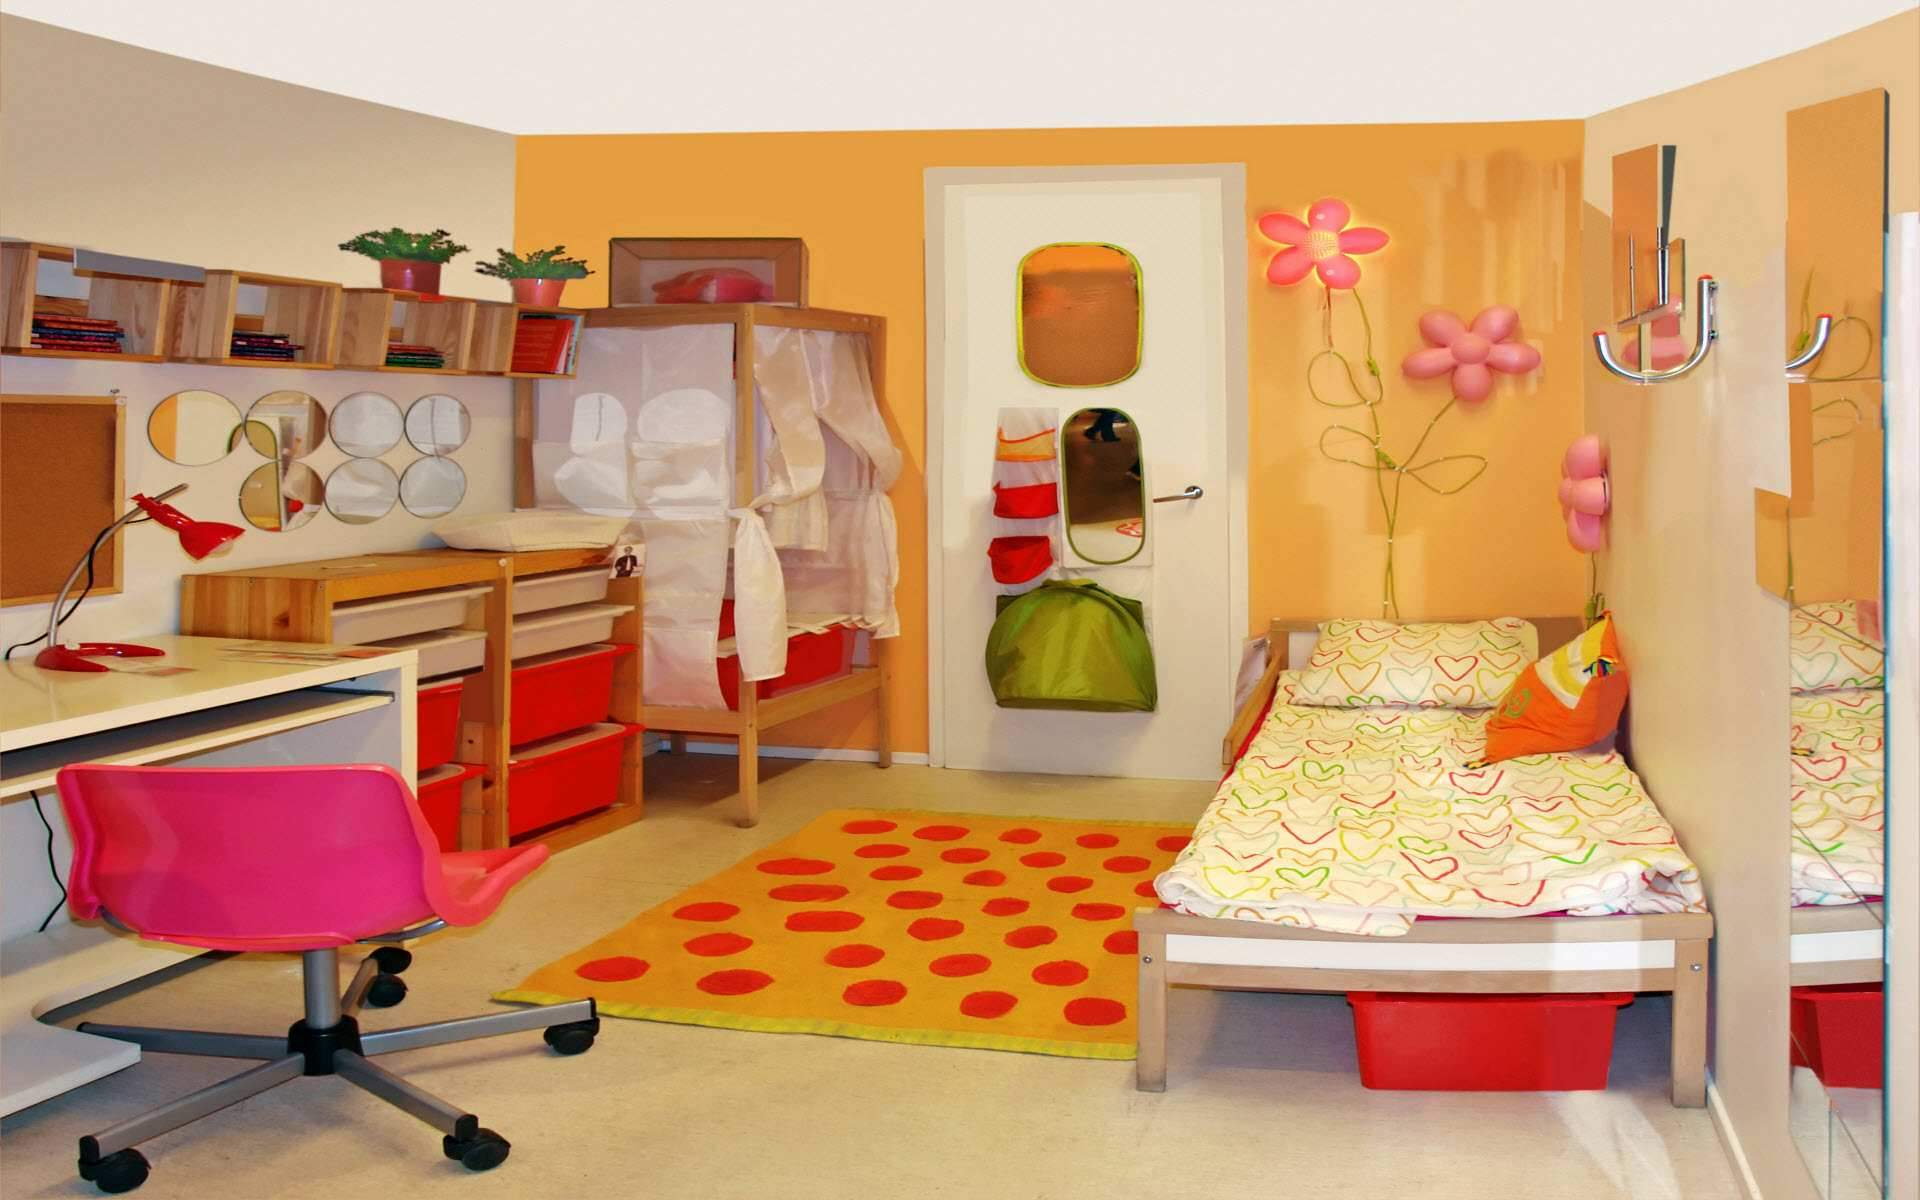 Unique Small Kids Room Decorating Ideas image 012